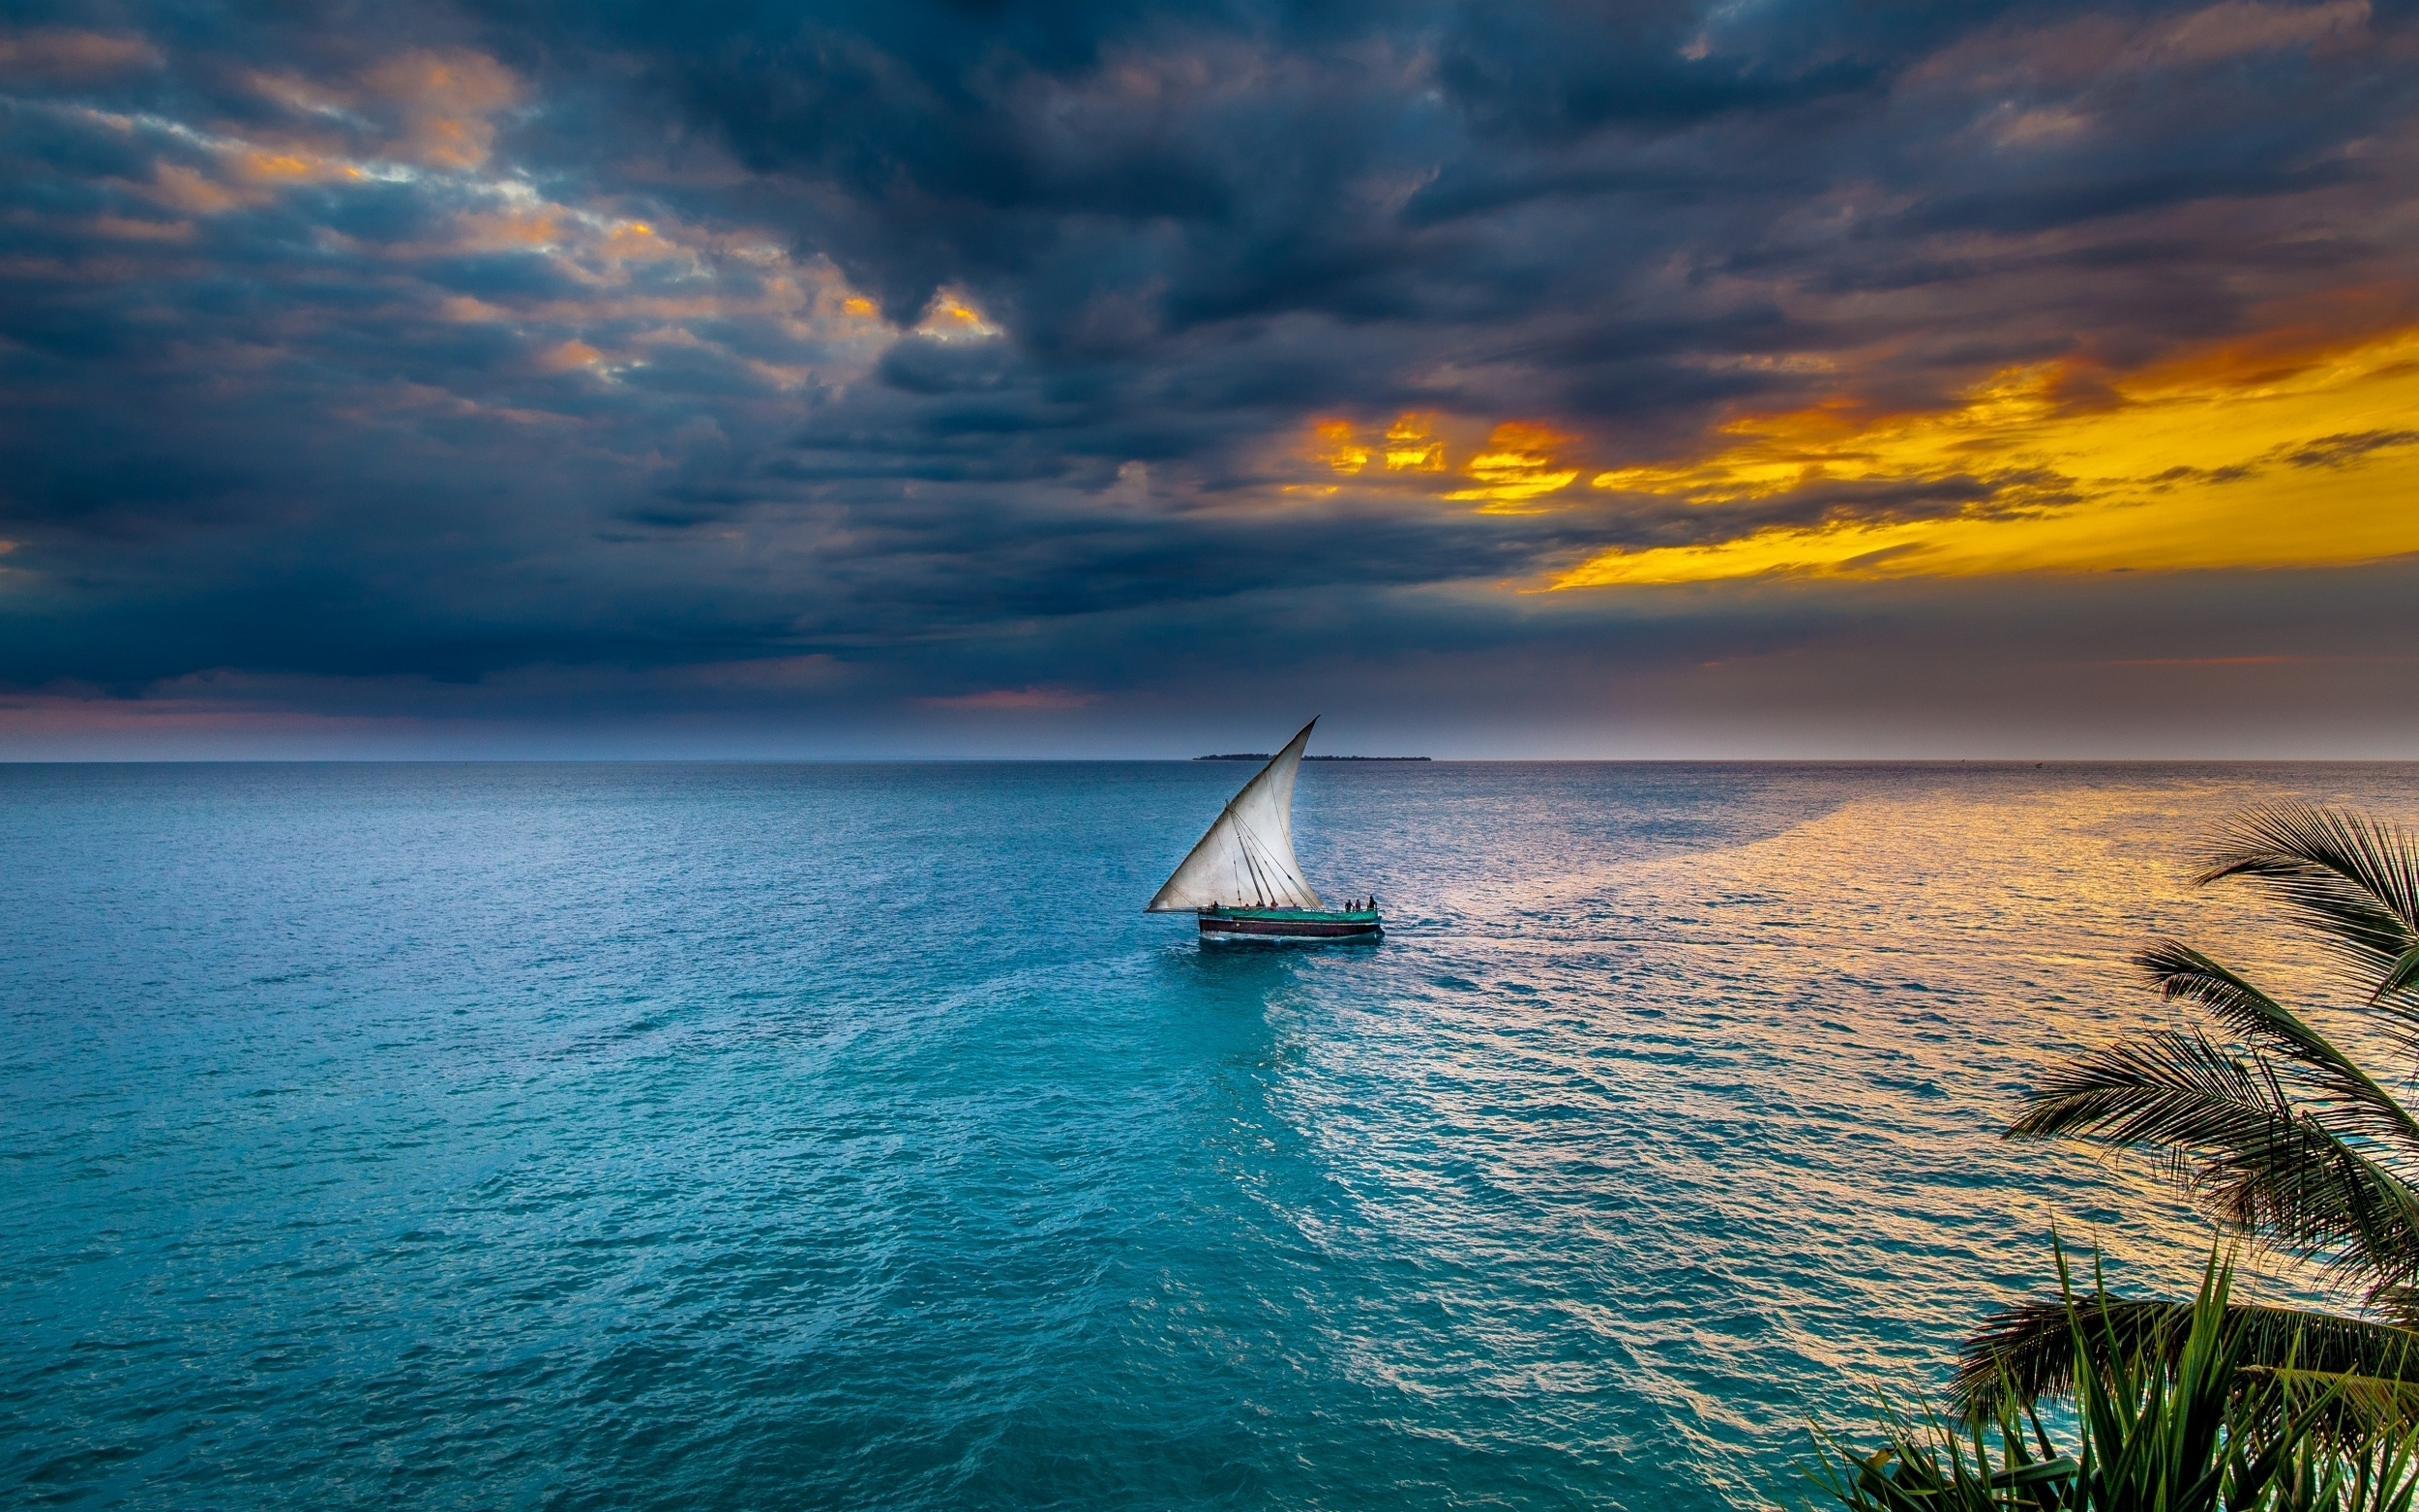 hungry for sailboat wallpaper - photo #37